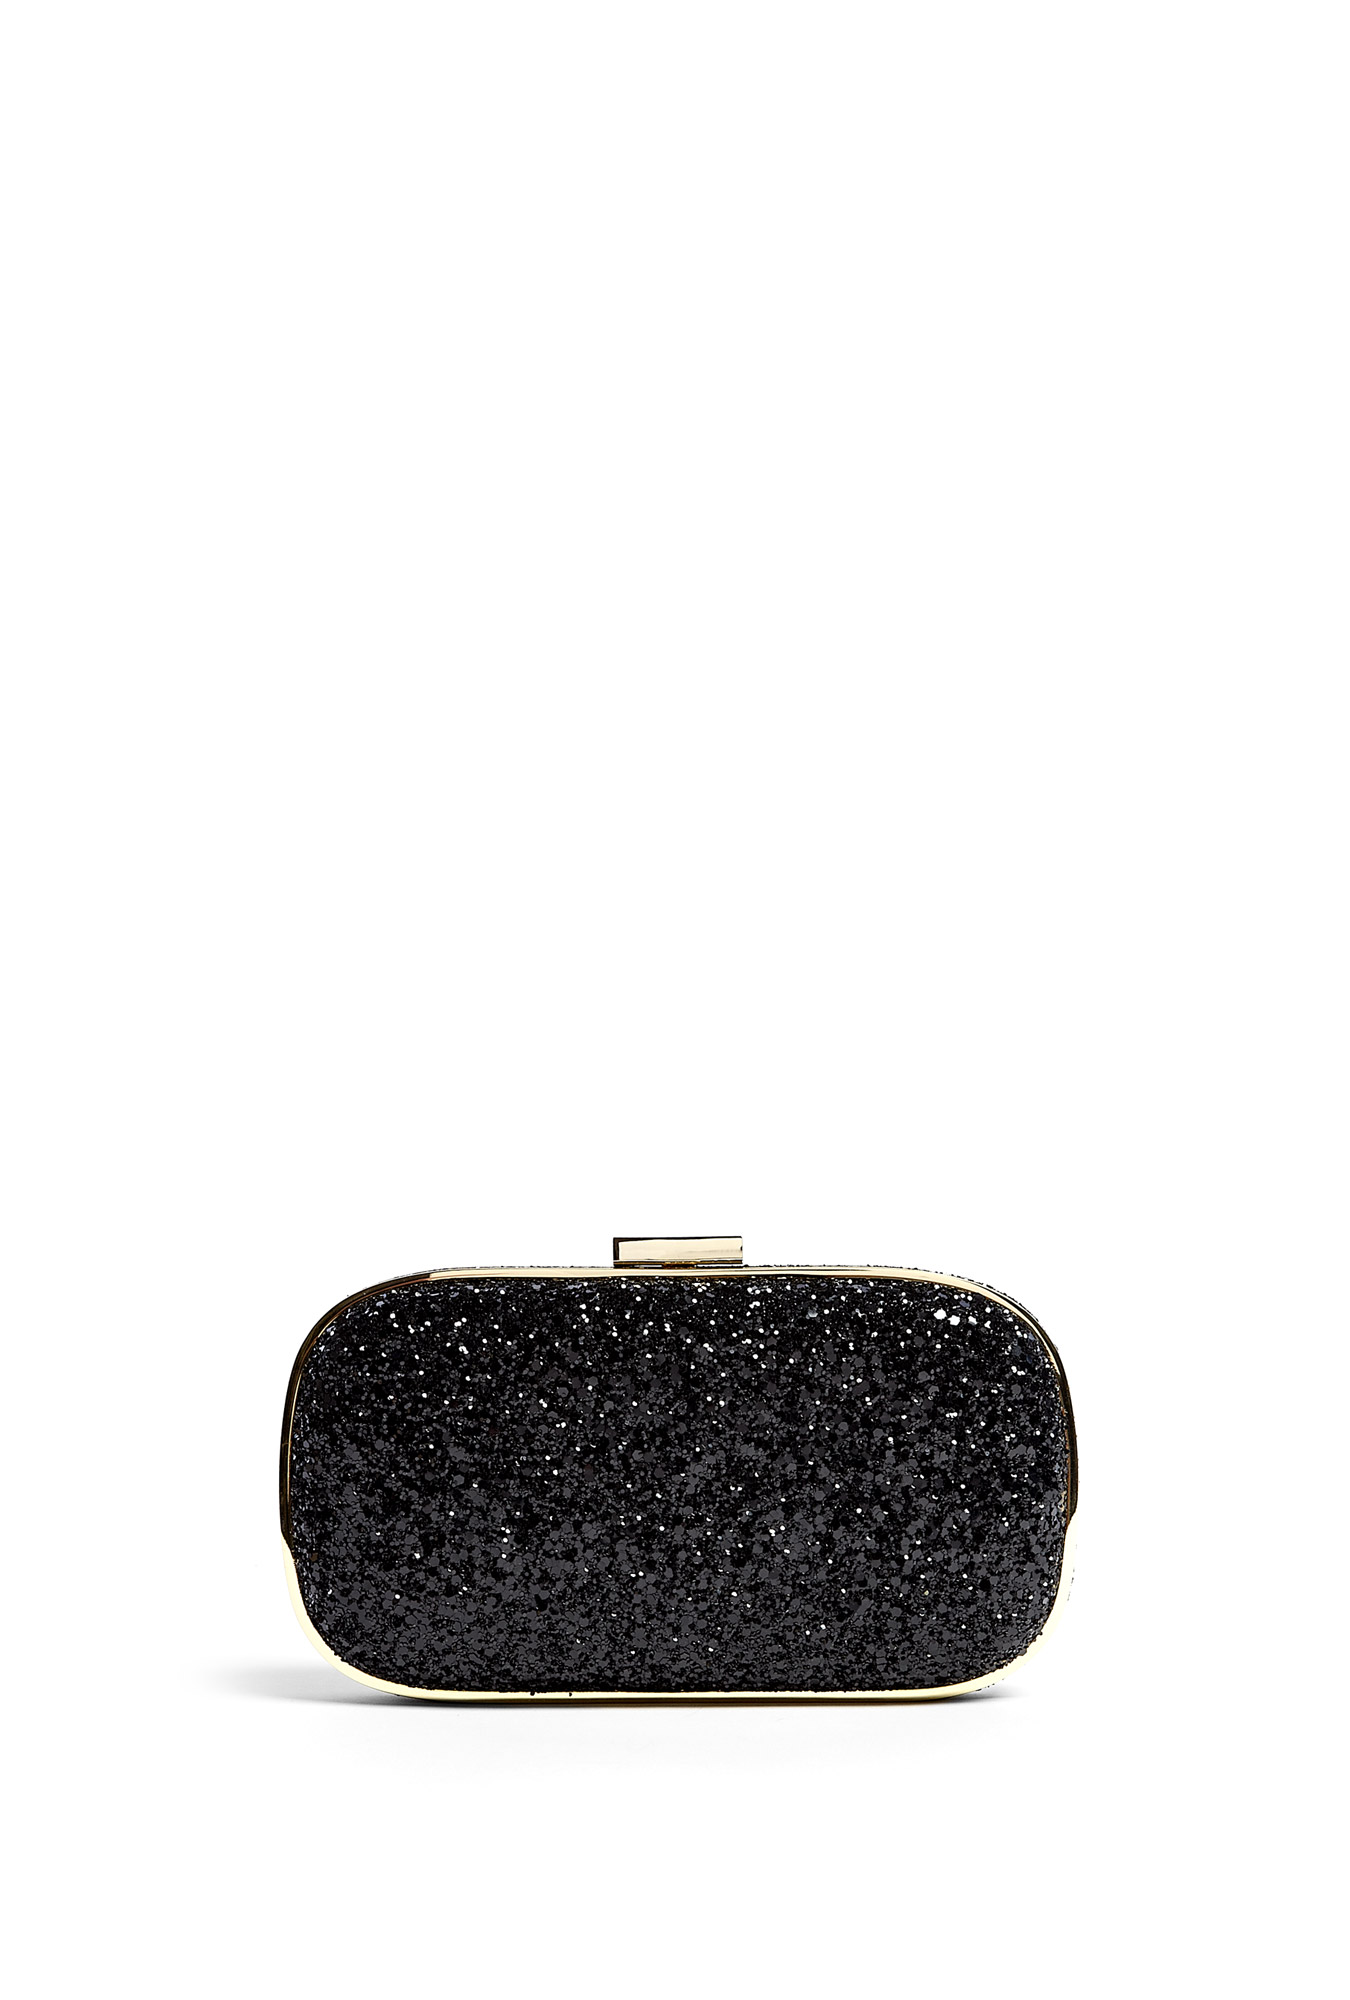 Anya Hindmarch | Marano II in Glitter Fabric by Anya Hindmarch